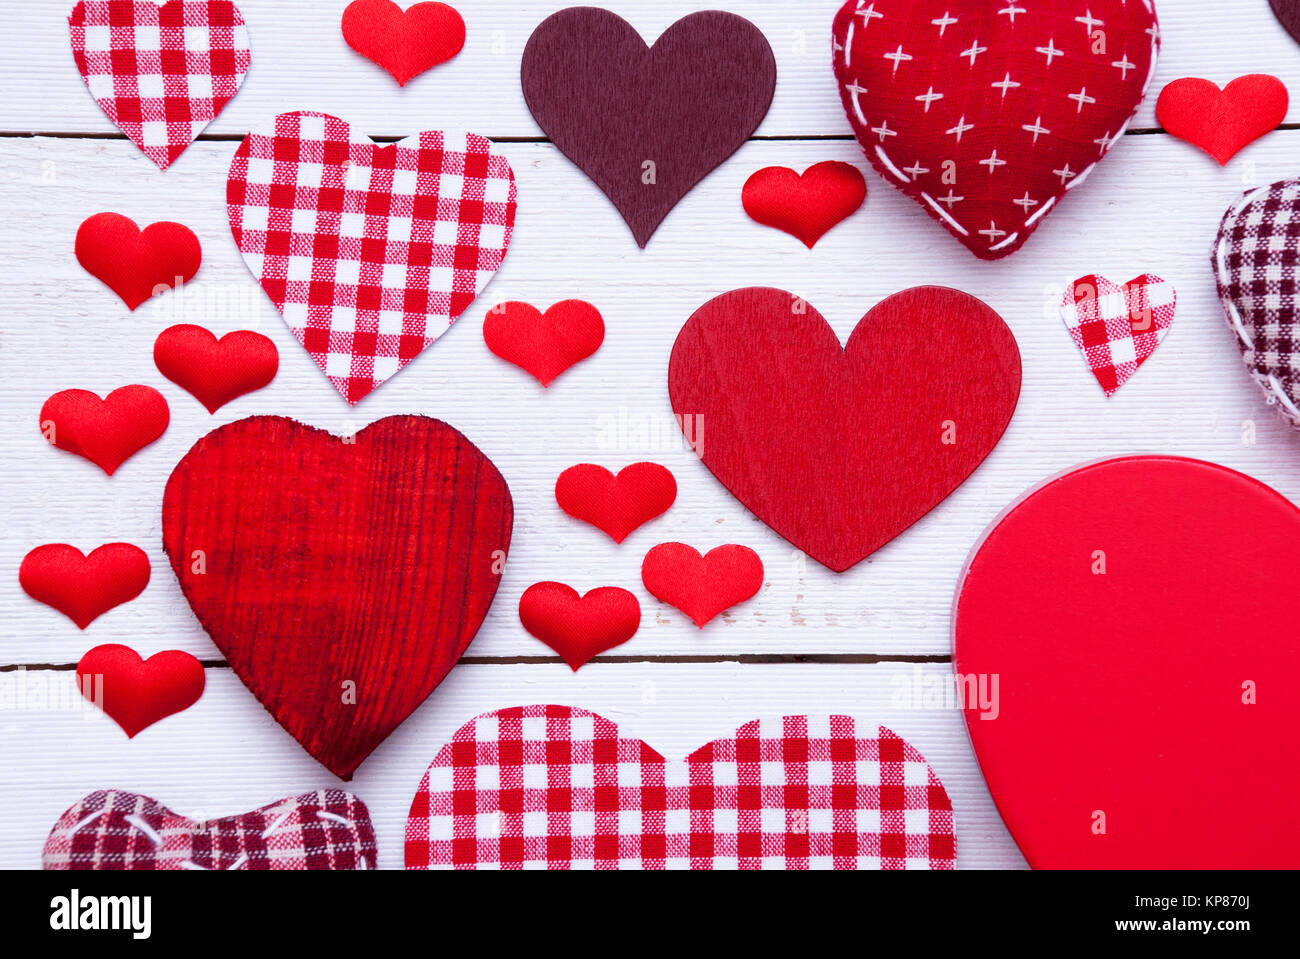 Texture With Many Red Fabric Hearts On White Wooden Background Stock Photo Alamy